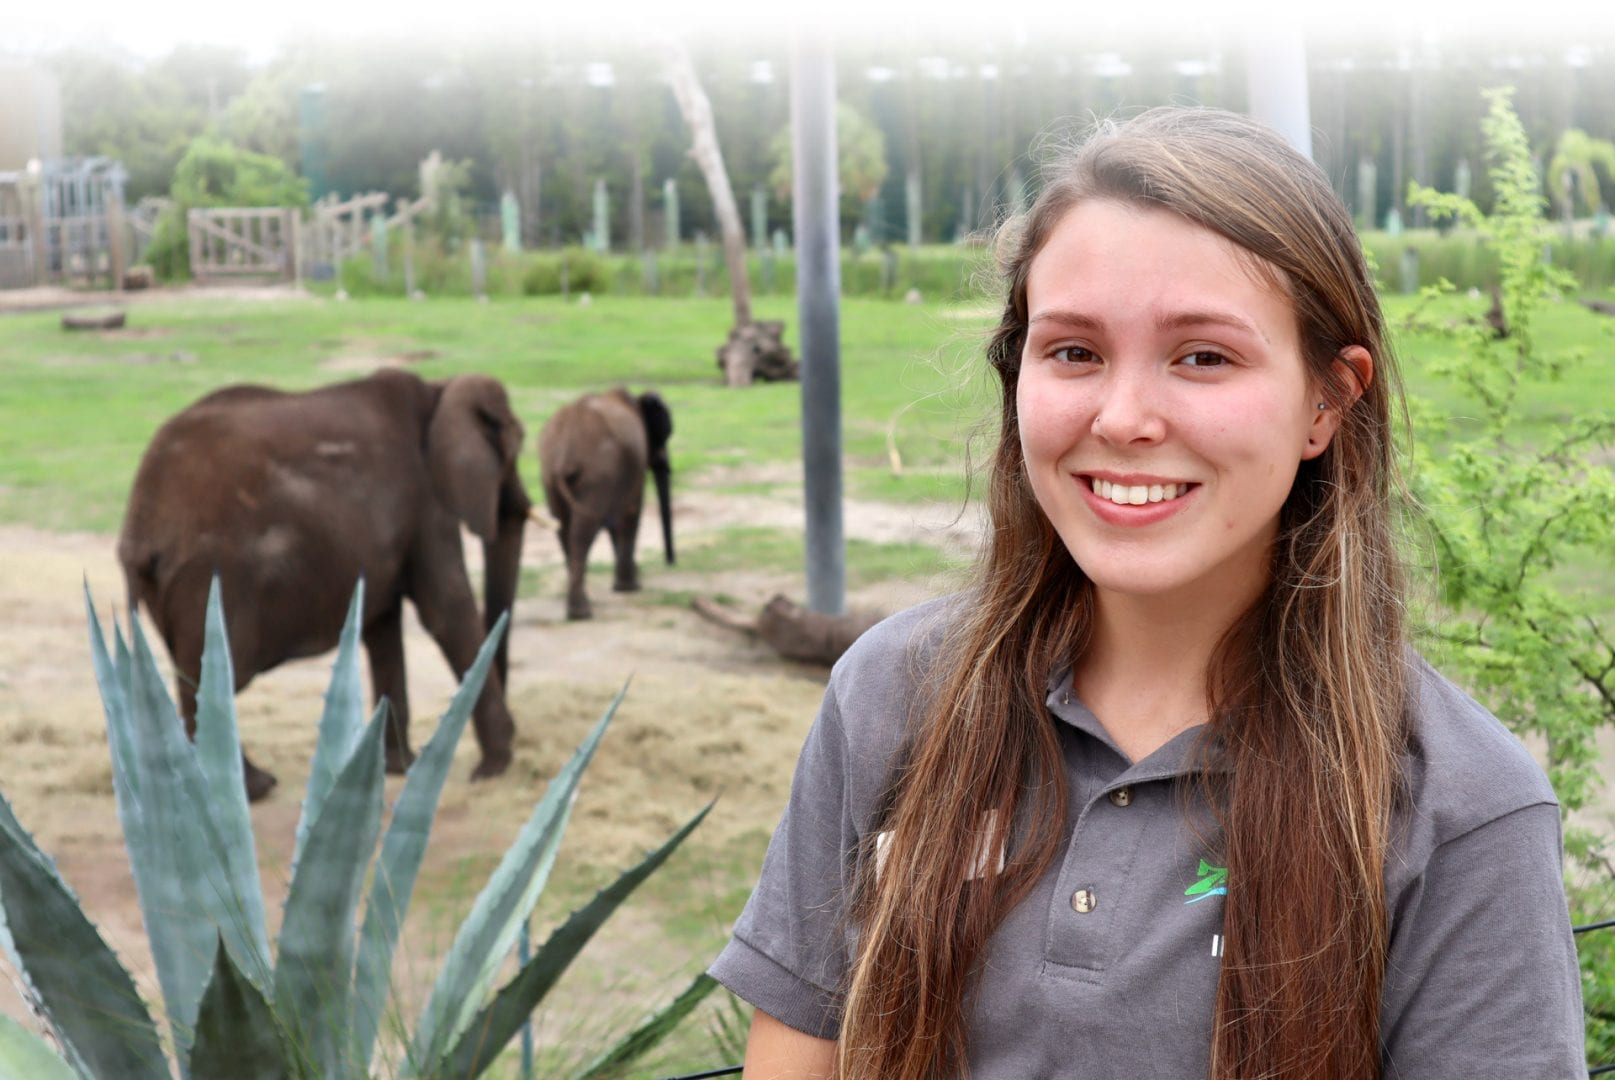 Animal Studies major at zoo with elephant walking